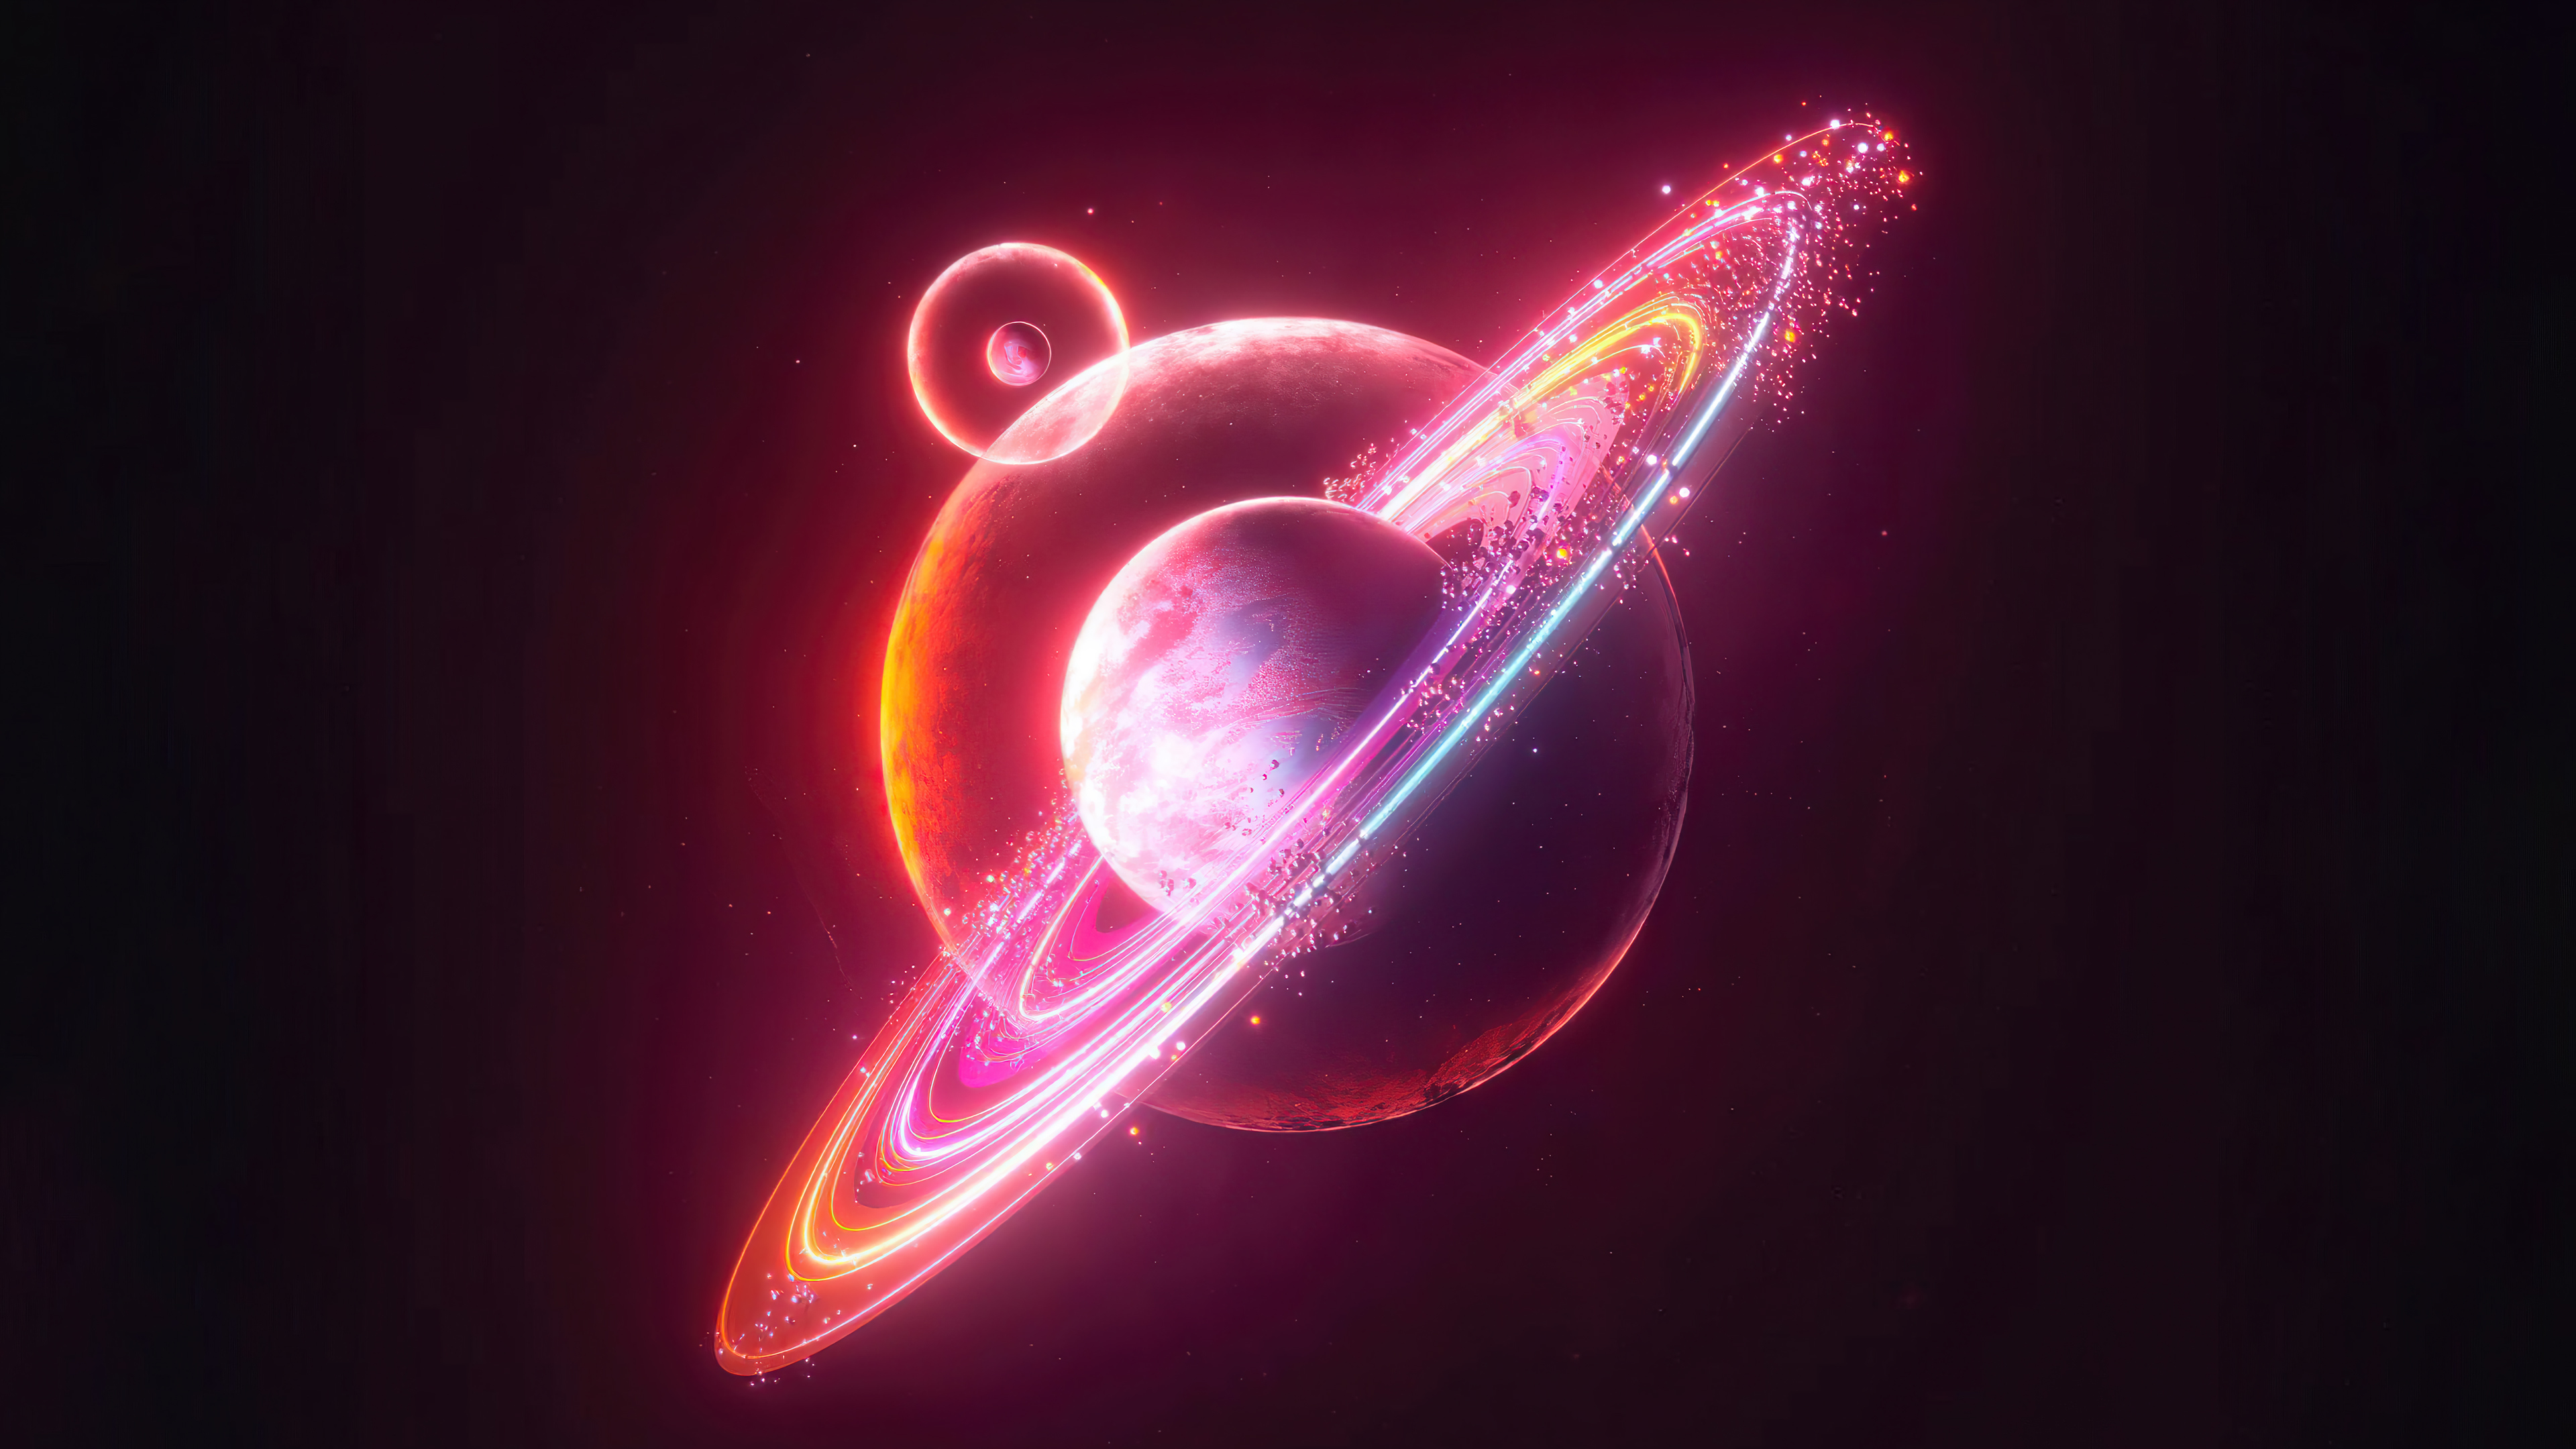 Wallpaper PLanet with ring Digital Art